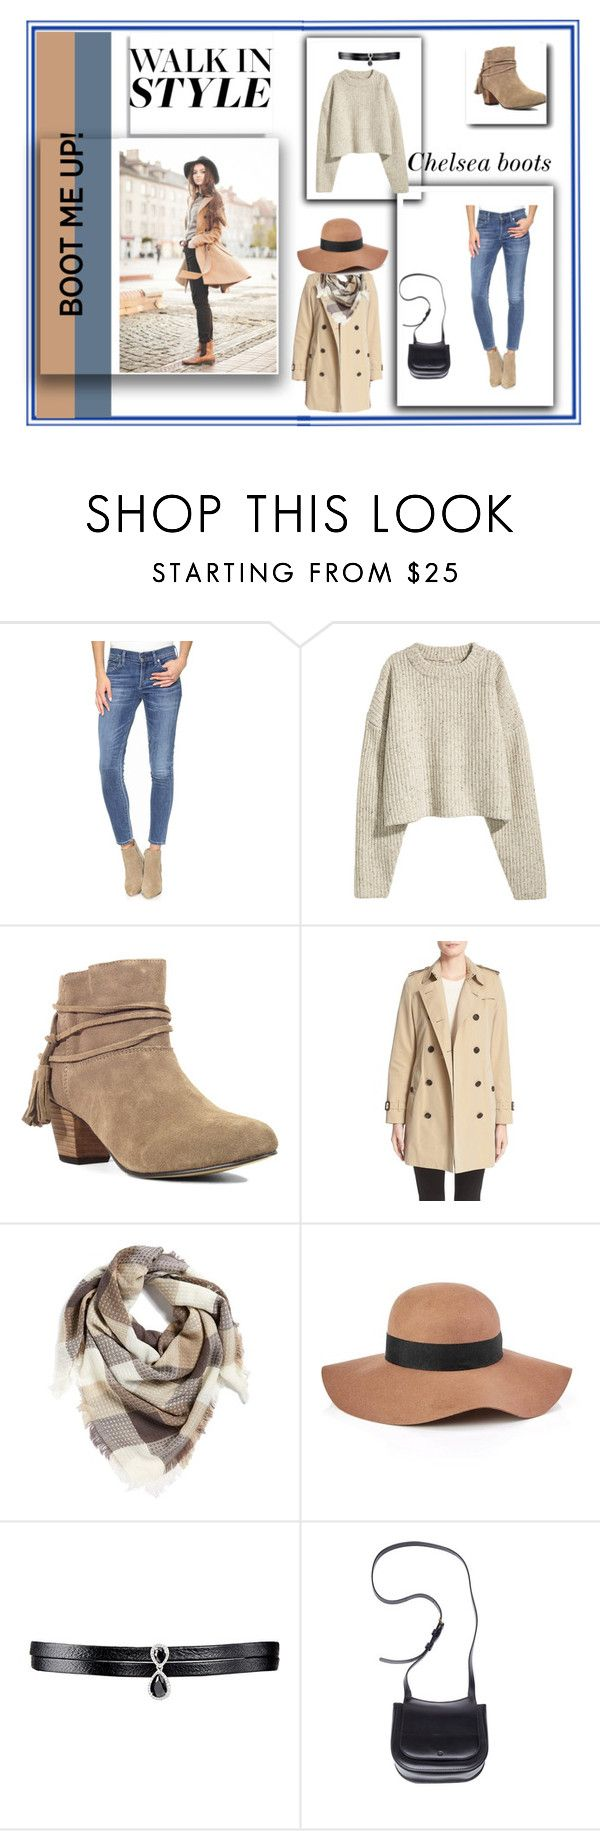 """Chelsea Boots"" by colonae ❤ liked on Polyvore featuring Citizens of Humanity, Chelsea Crew, Burberry, BP., Reiss, Fallon and The Row"